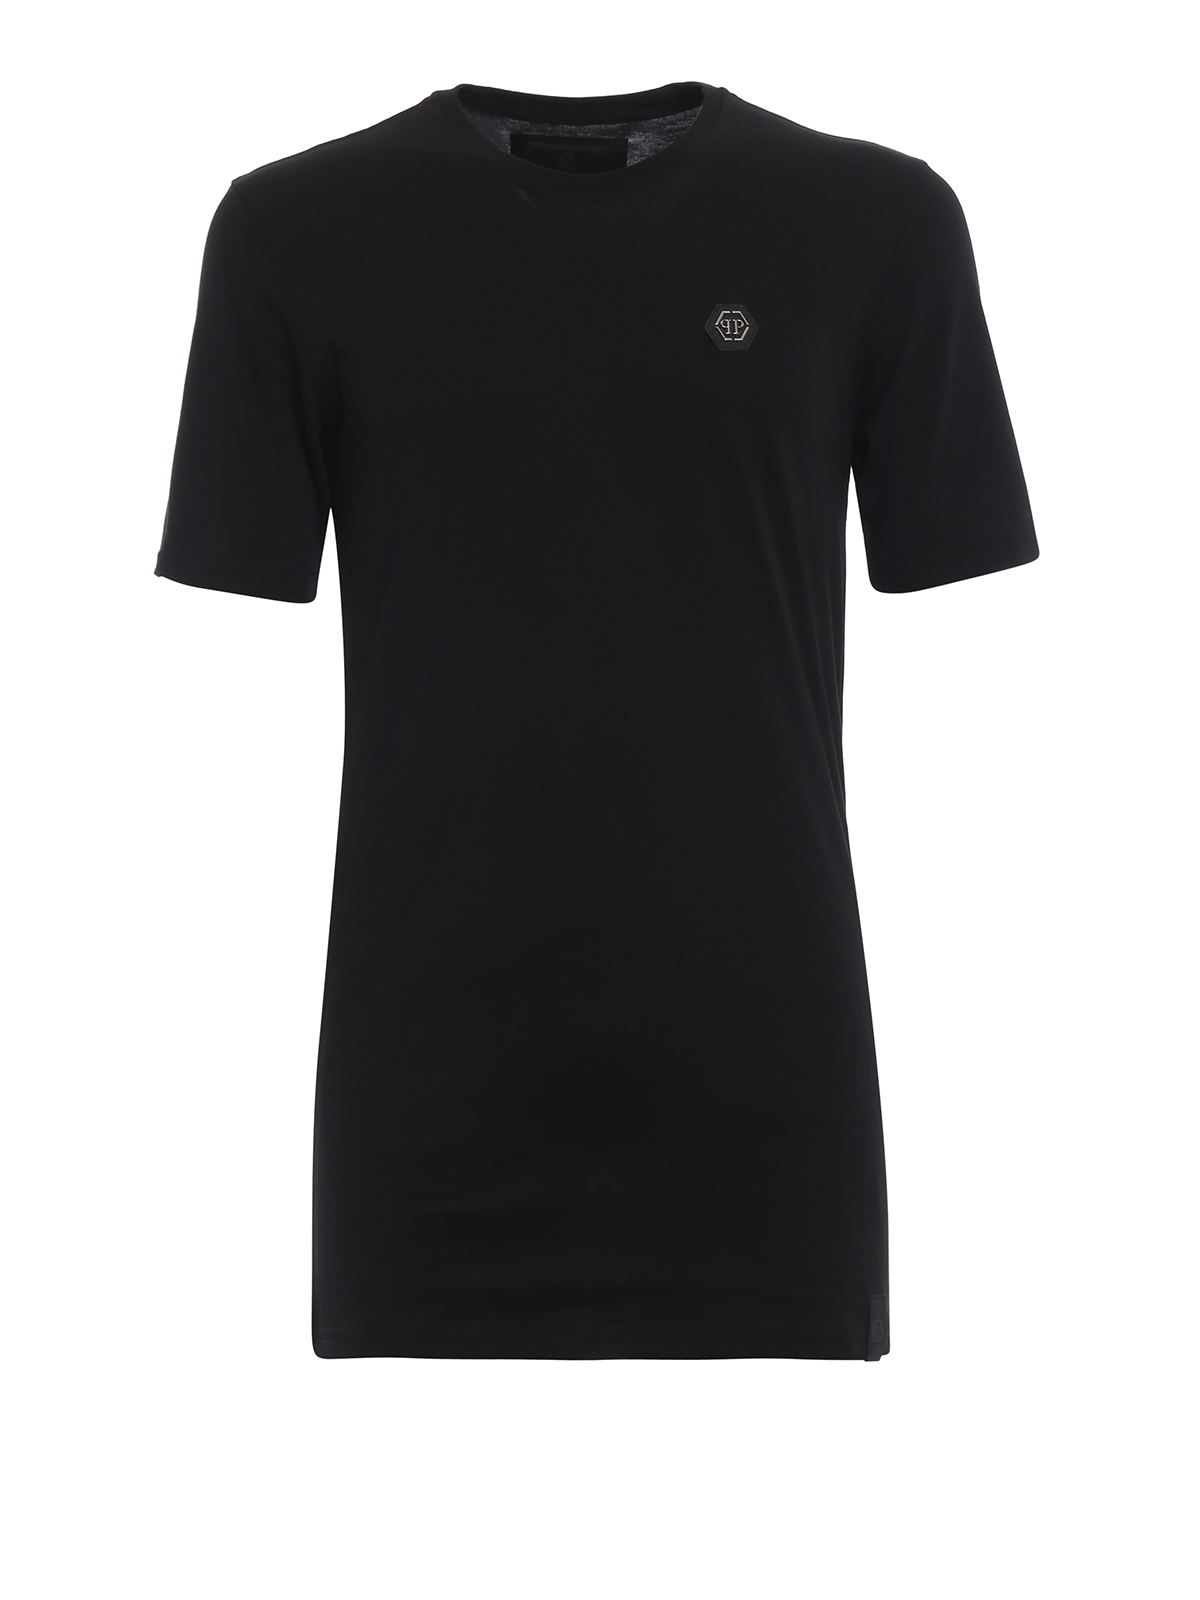 Philipp Plein - Original Black Cut solid black Tee - t-shirts ... 4420e3f4b30f